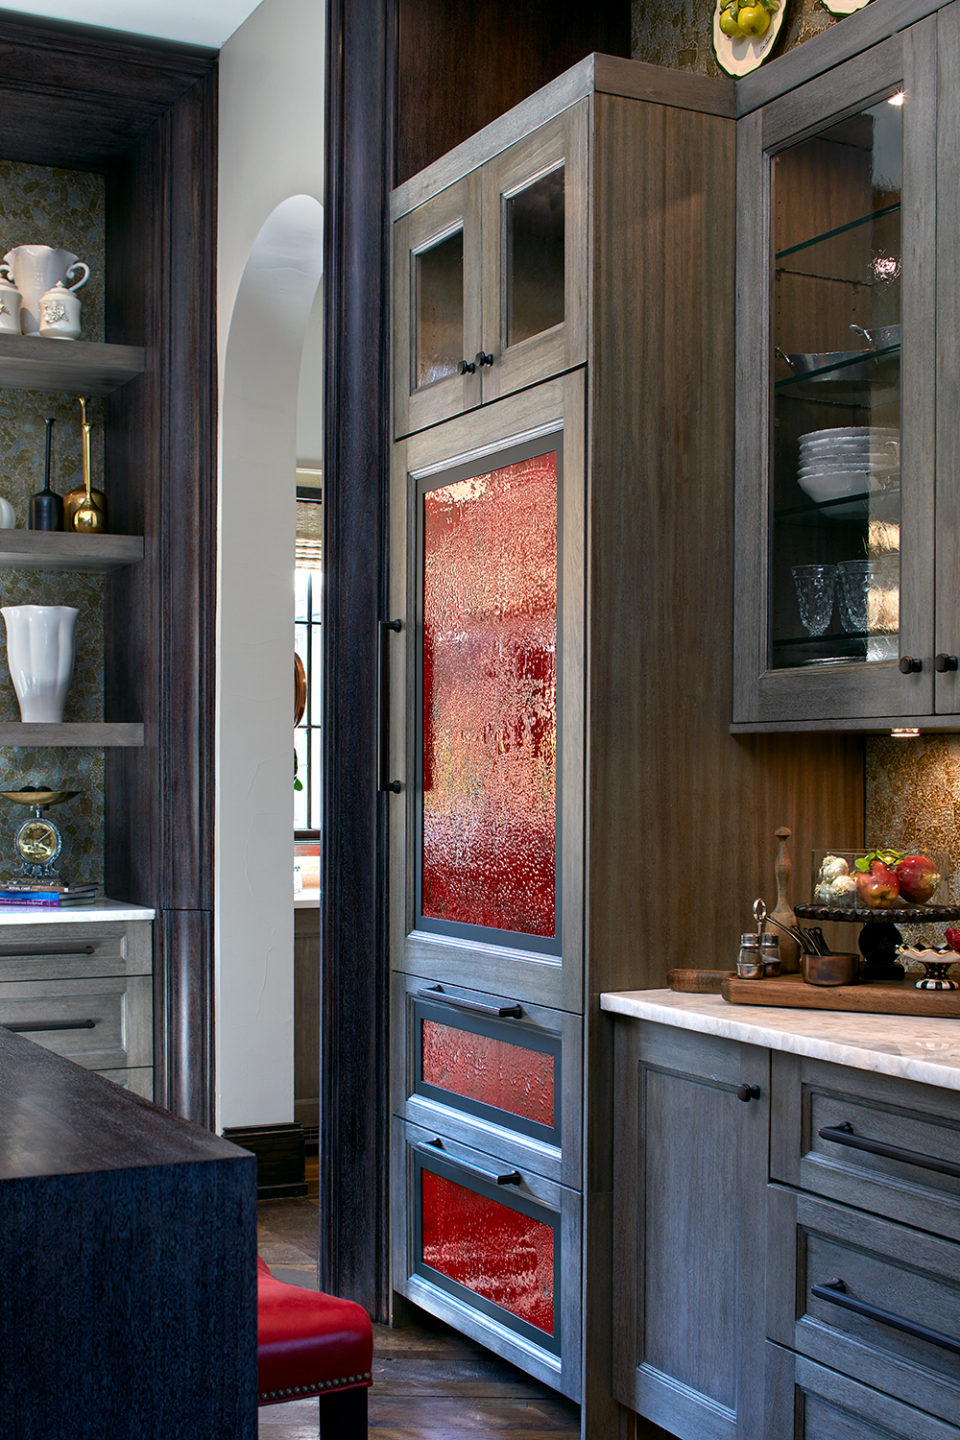 Red Blown-Glass Panels on Fully Integrated Refrigerator